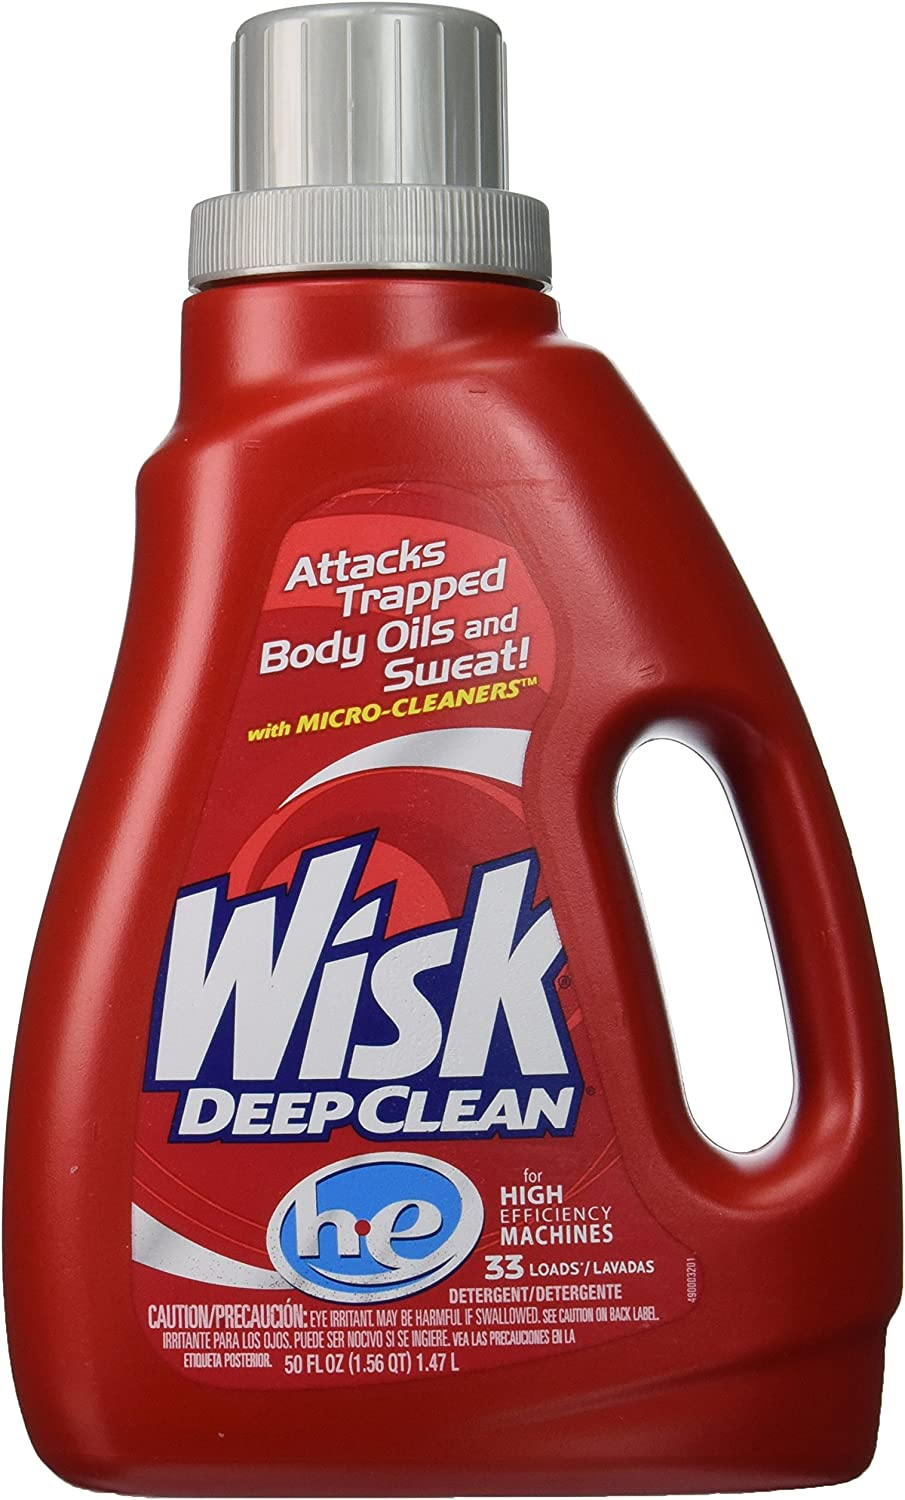 Wisk Deep Clean Detergent - 33 Loads